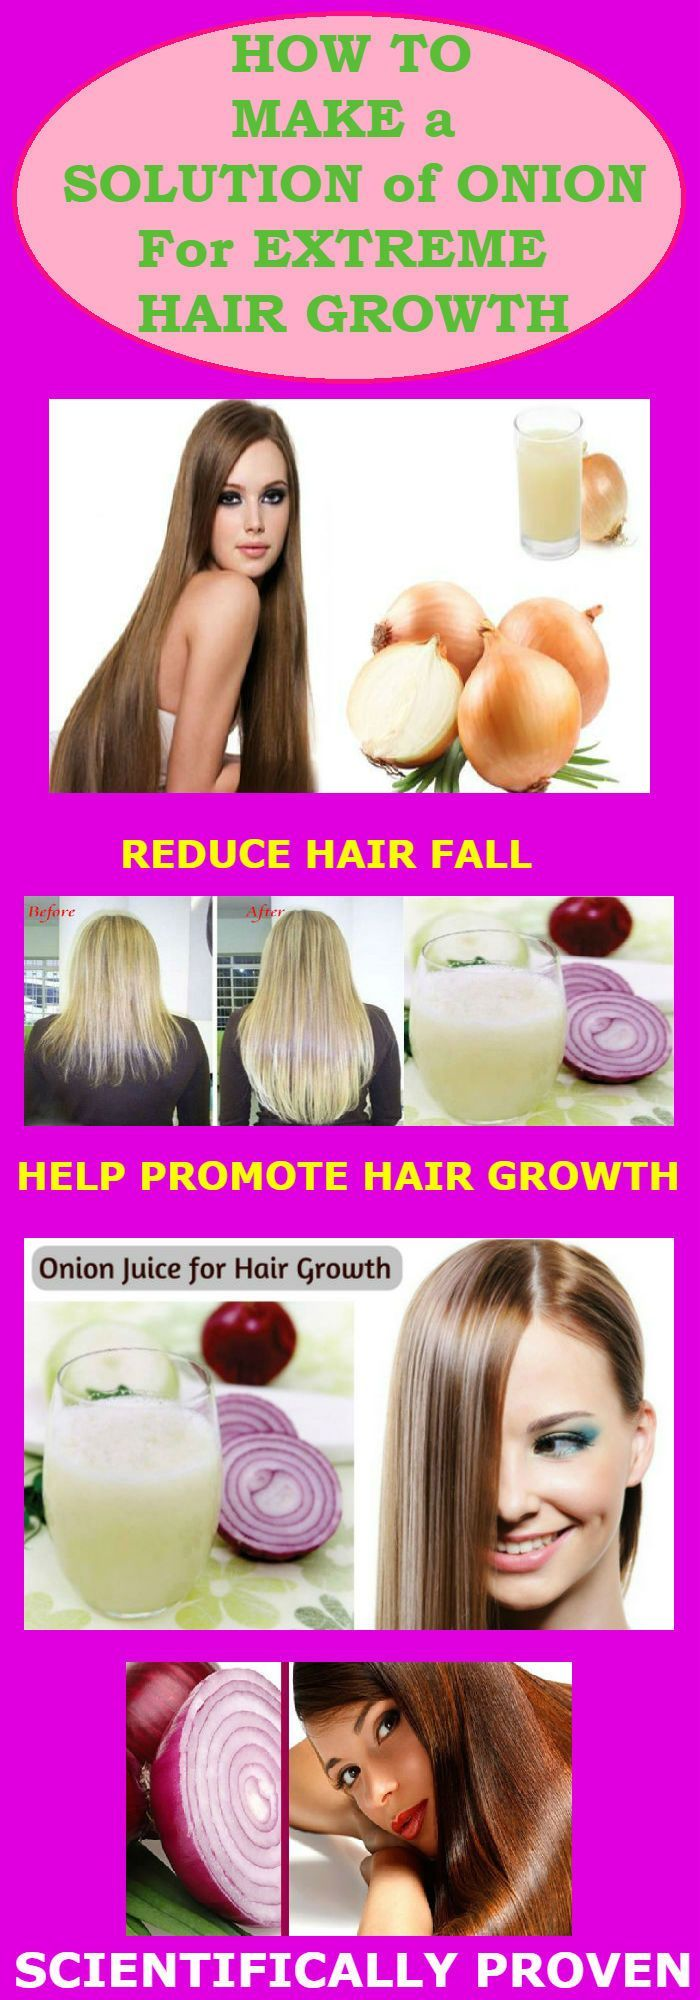 How To Make a Solution of Onion For Extreme Hair Growth!?